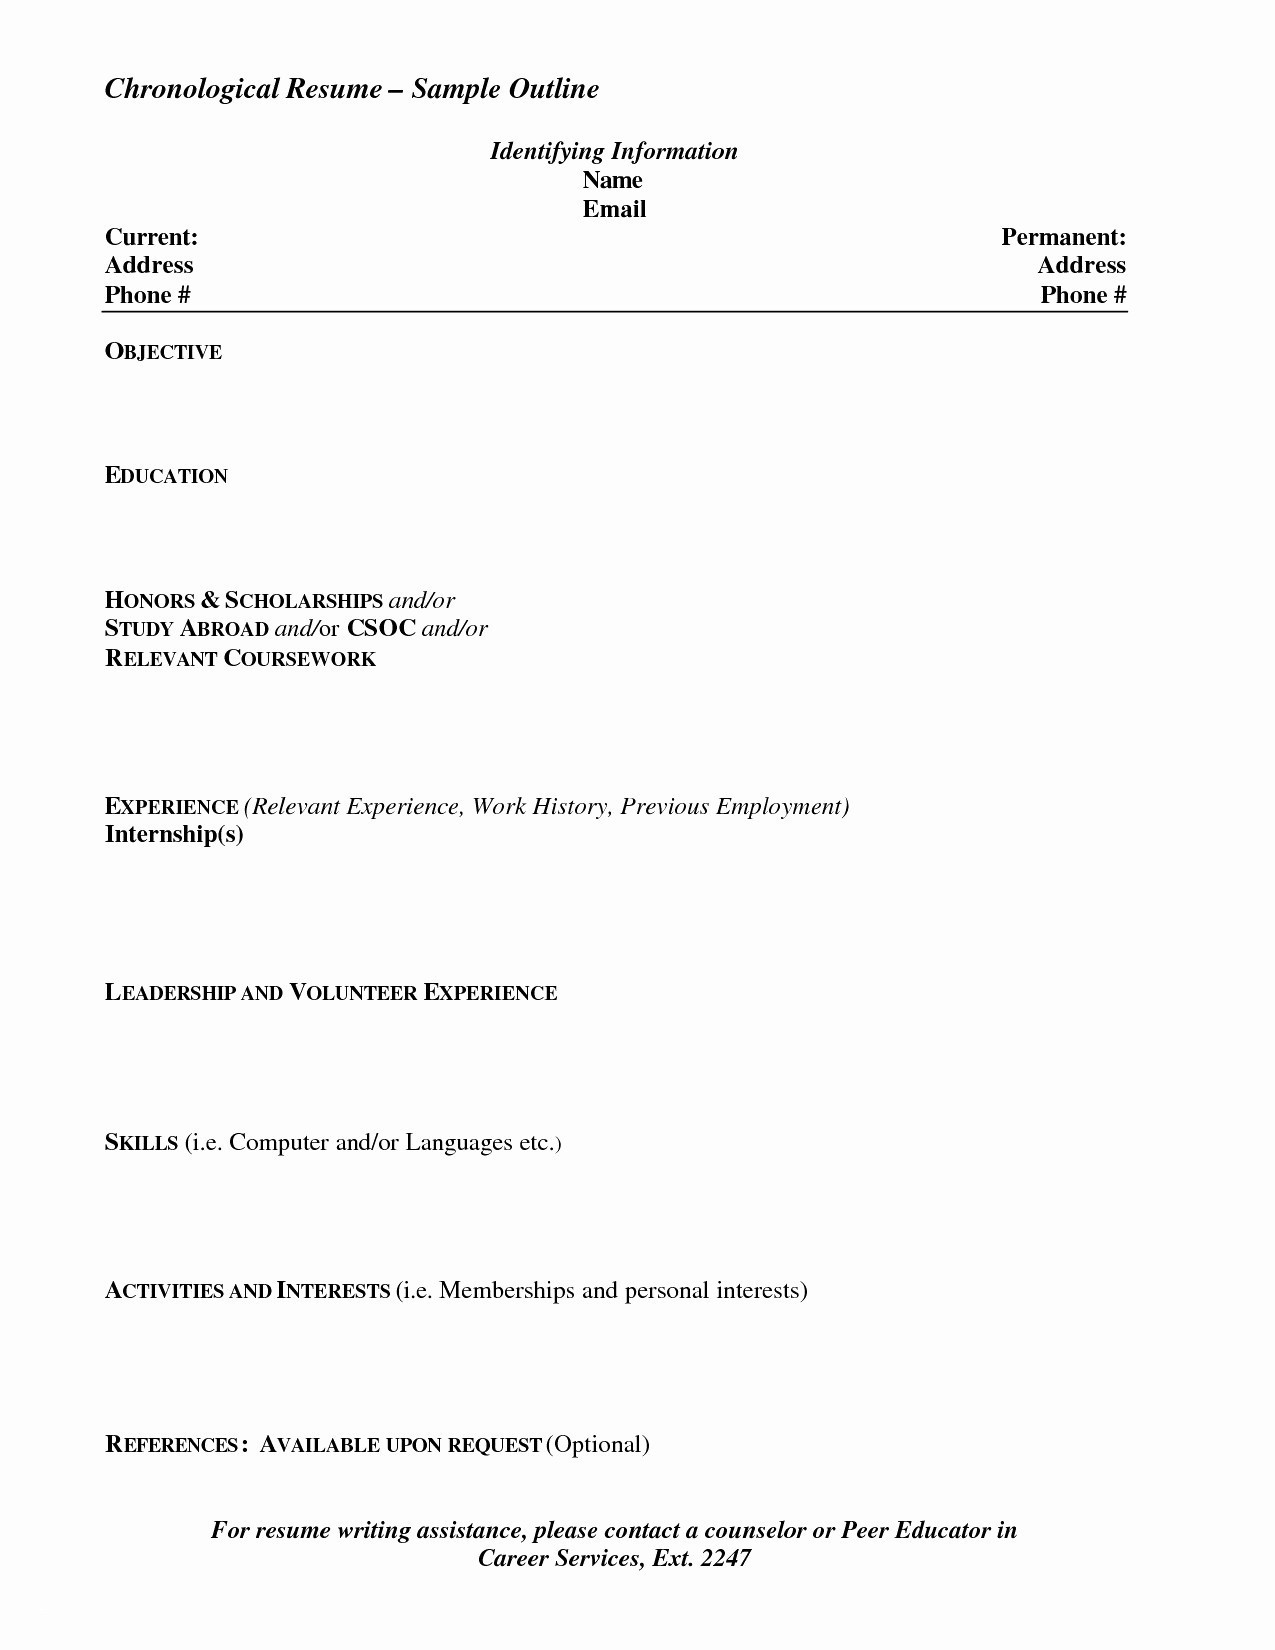 Hr Generalist Resume Template - Hr Generalist Resume Unique Free Sample Hr Resume Examples Visit to